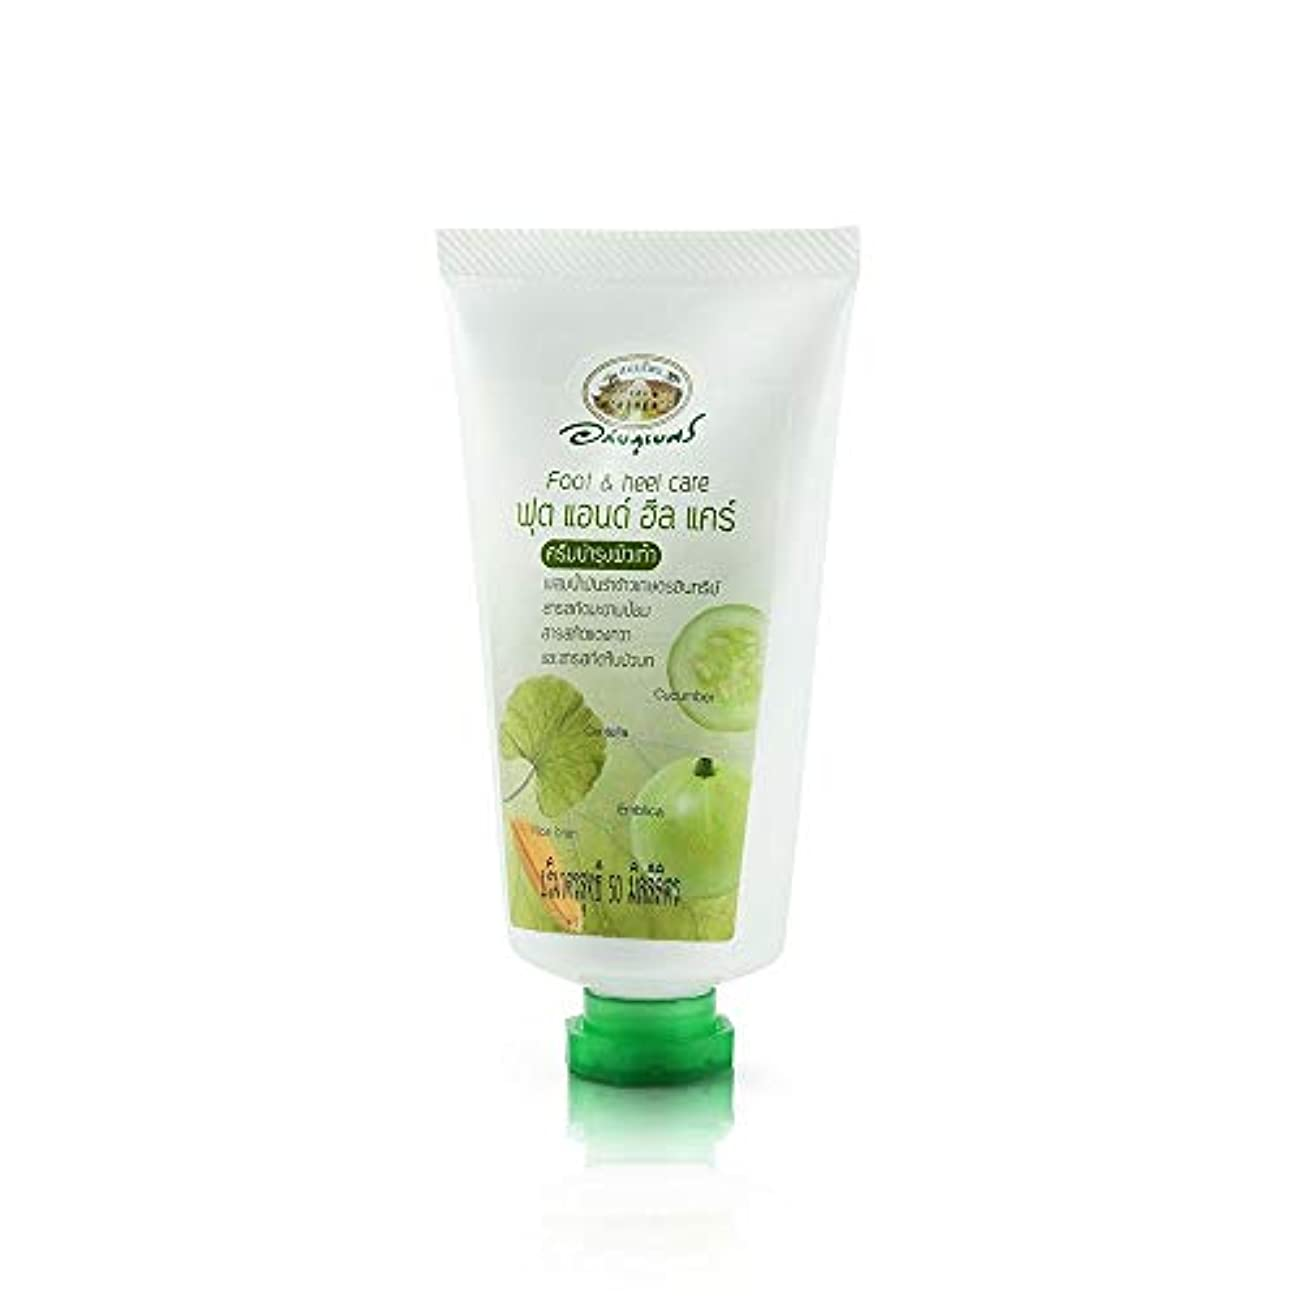 囲むコア伝導Abhaibhubejhr Cucumber Rice Bran Oil Centella Foot And Heel Care Cream 50ml. Abhaibhubejhrキュウリ米ぬか油Centellaフットアンドヒールケアクリーム50ml。